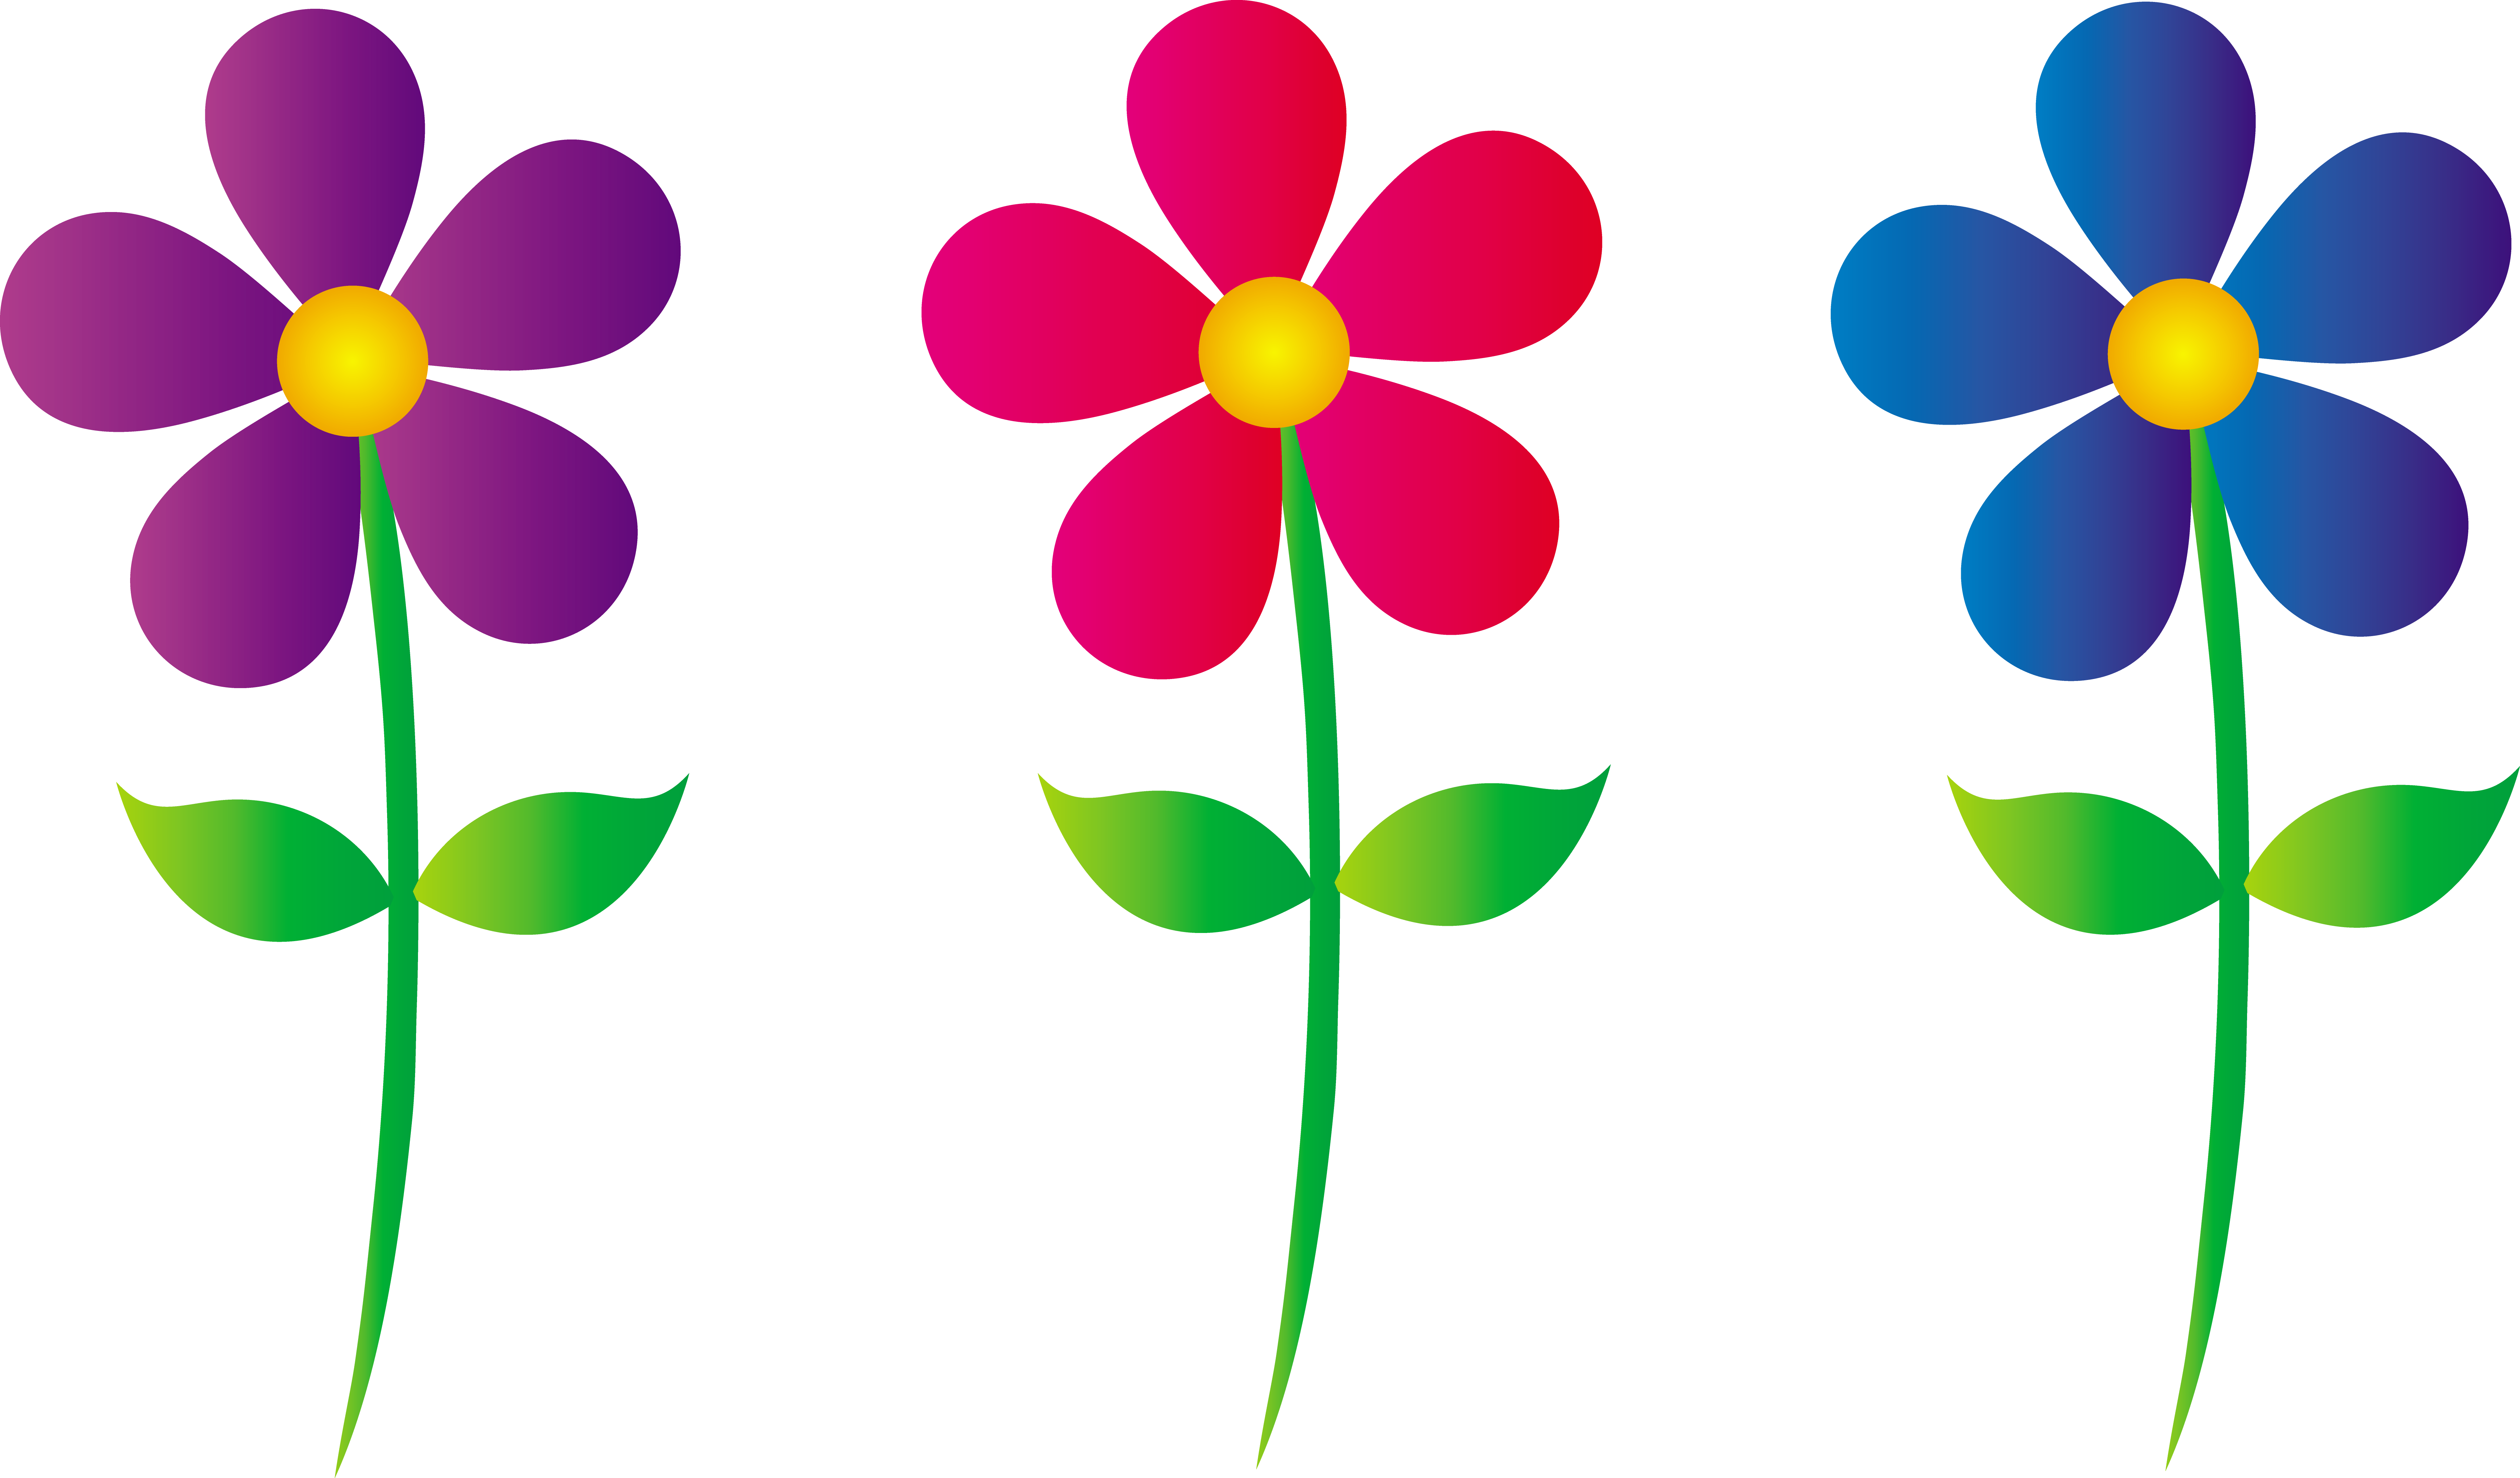 fall flowers clipart at getdrawings com free for personal use fall rh getdrawings com free flower clipart to download free flower clipart pictures